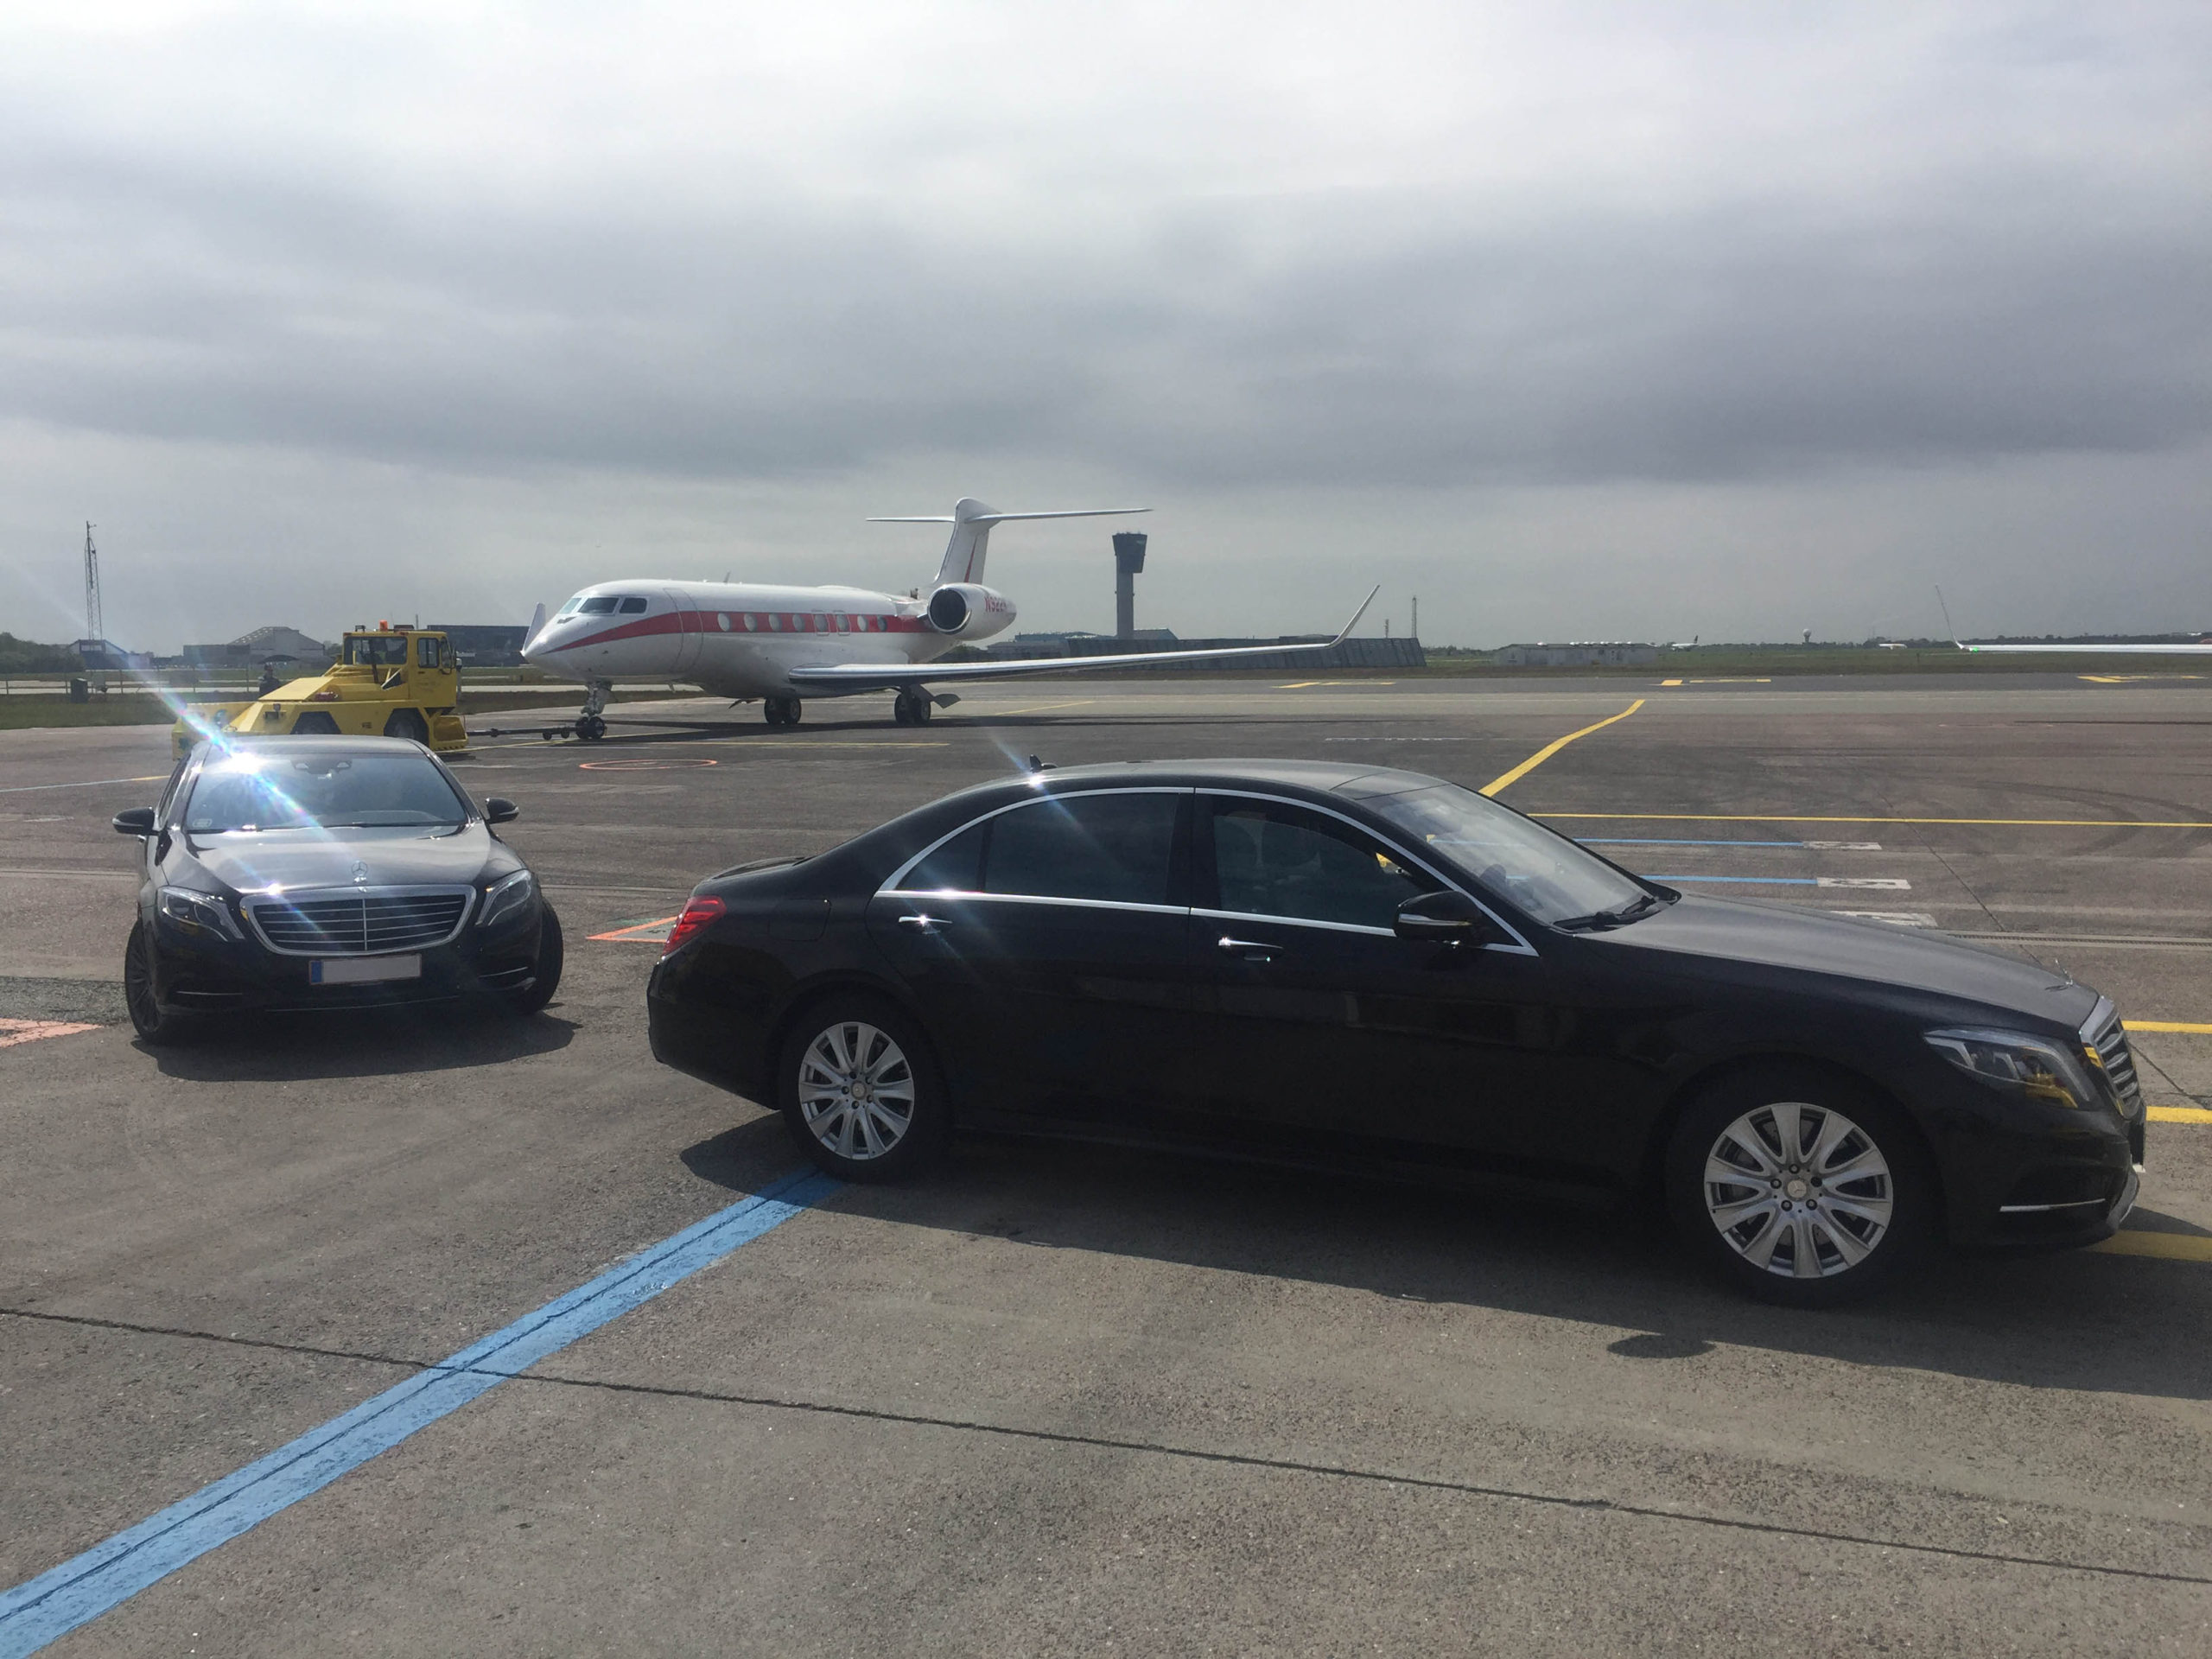 Limousines on airport